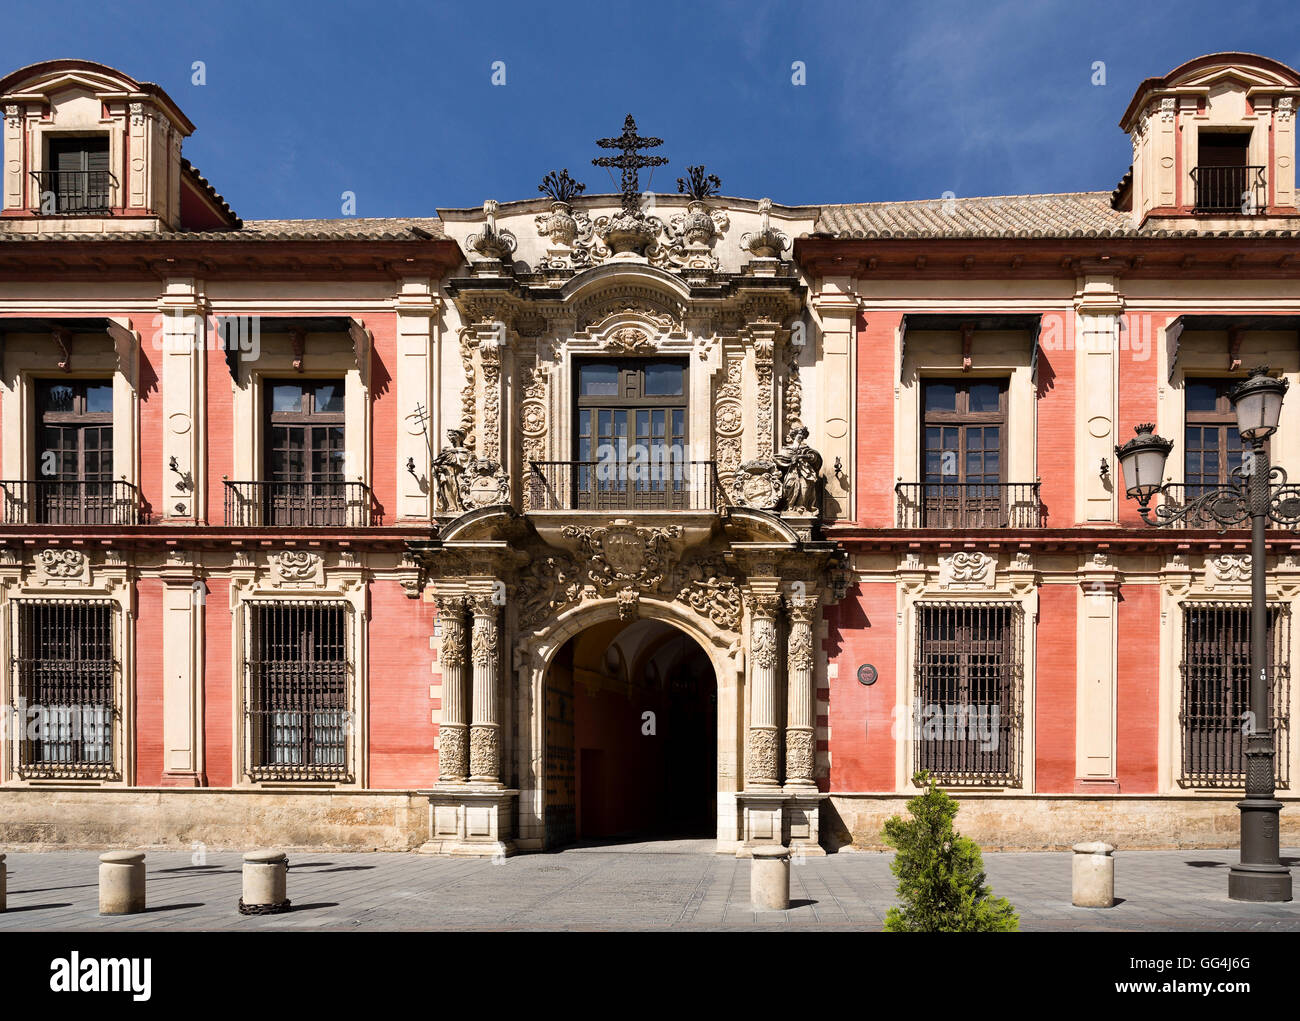 facade of the spanish baroque architectural style archbishop palace